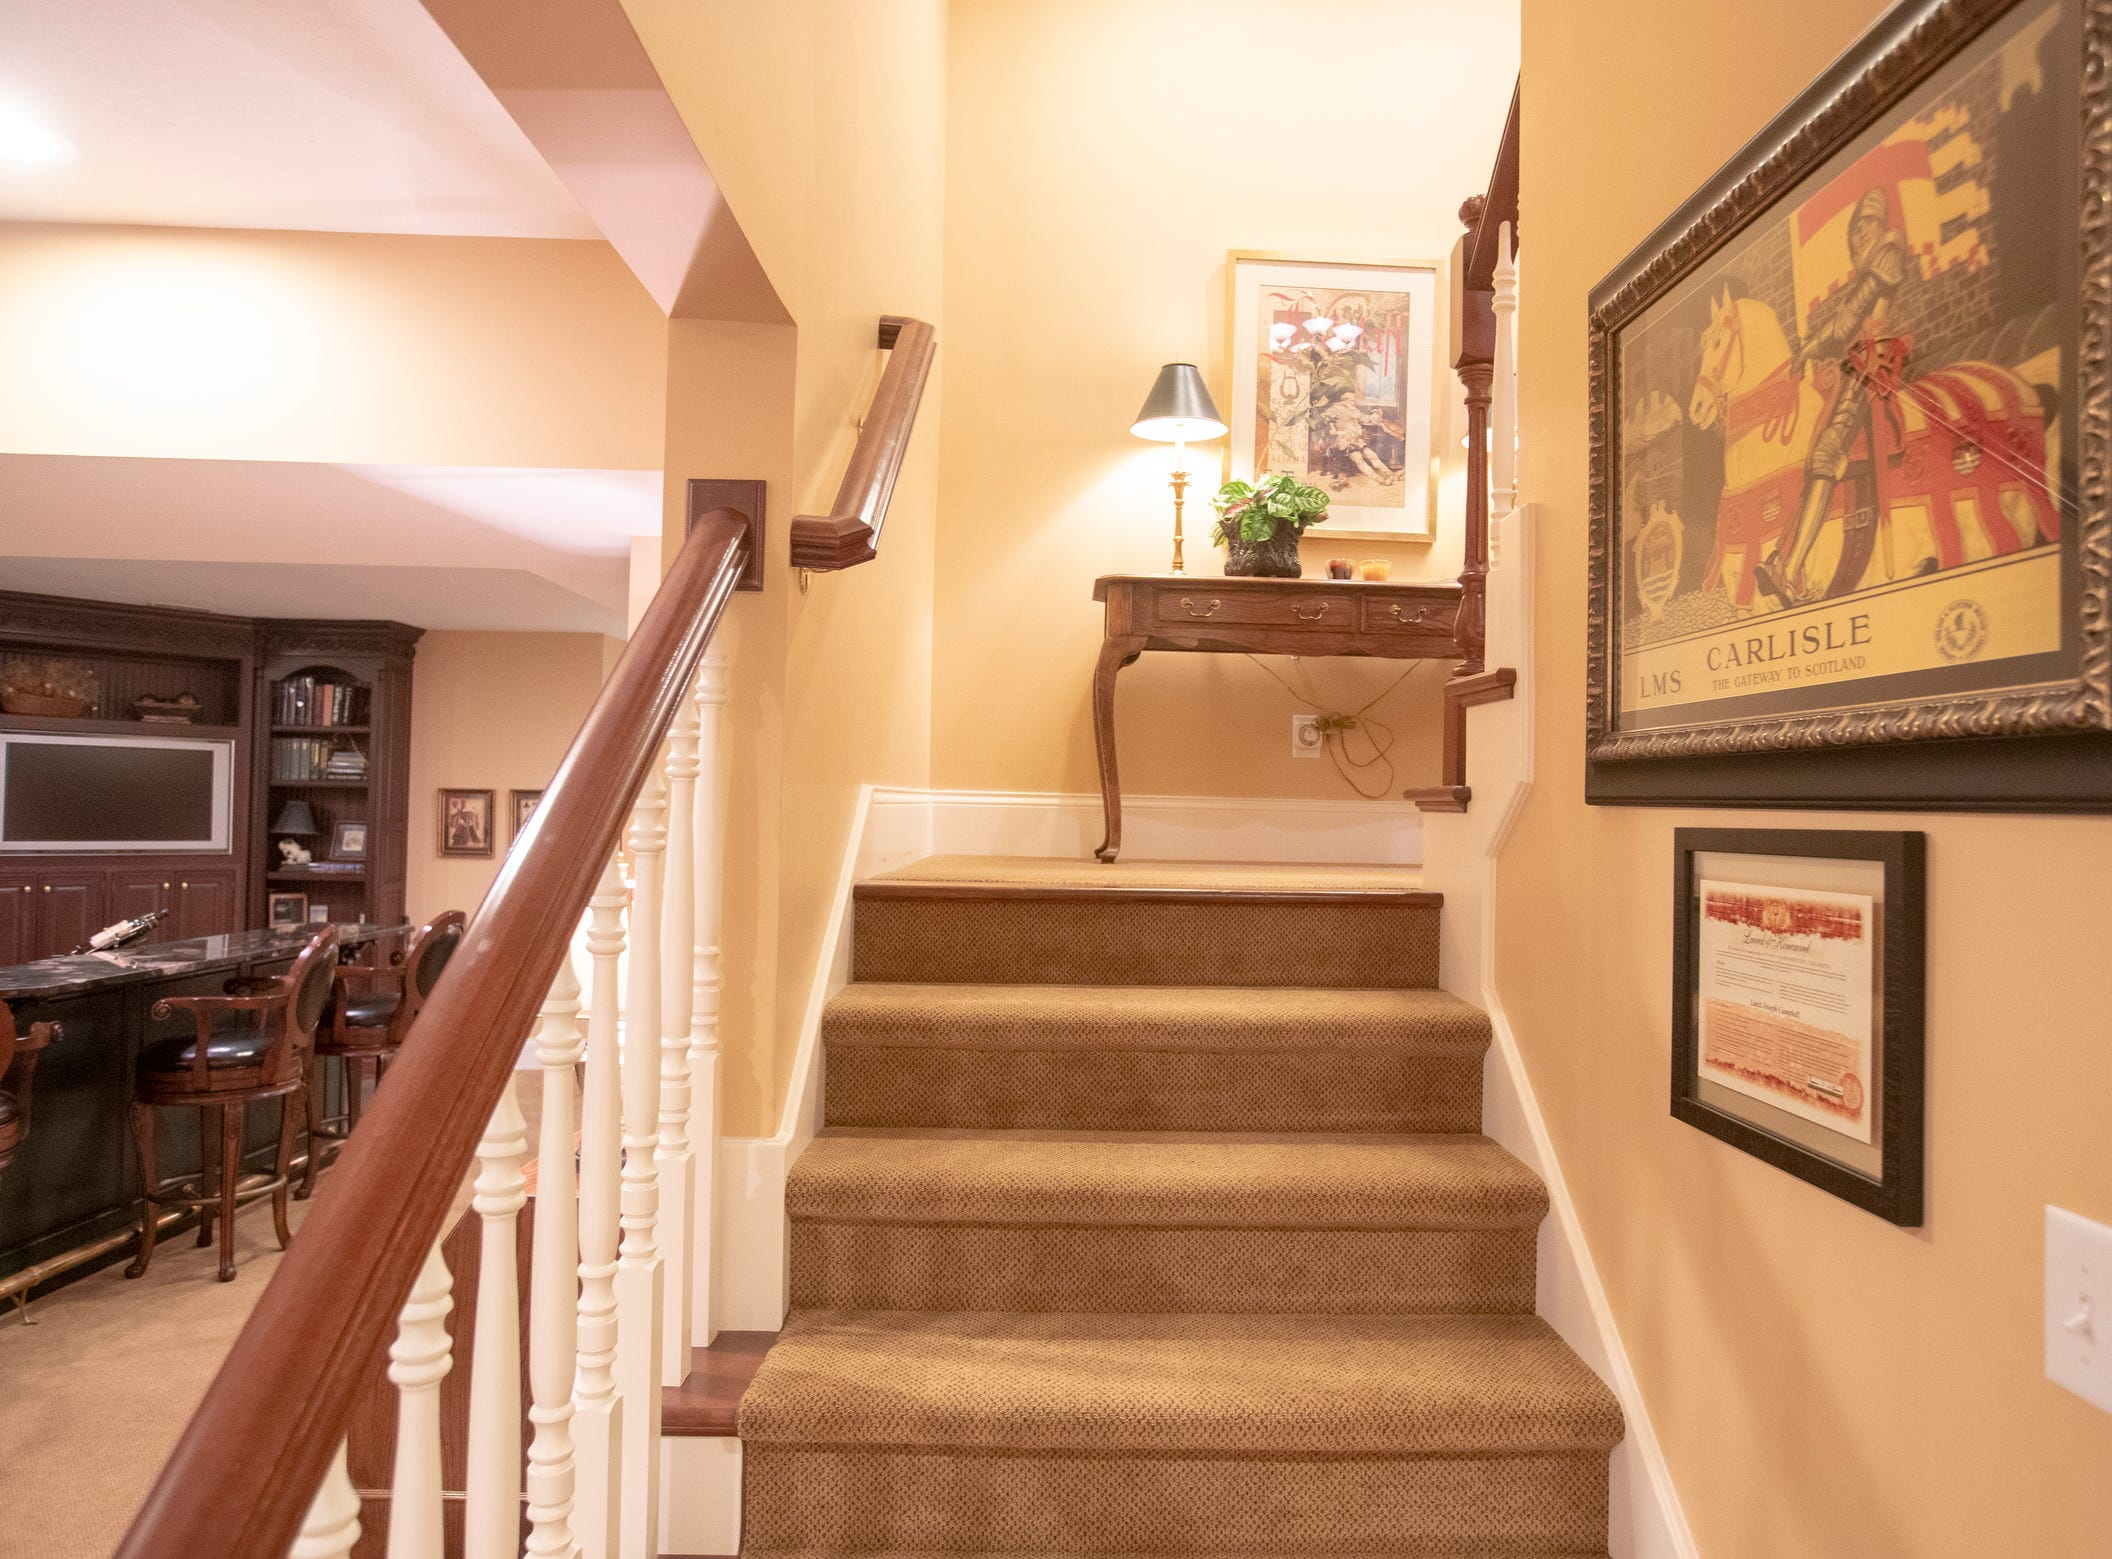 The stairway leading up from the basement inside of a thirteen-year-old Victorian home in the Village of West Clay, Carmel, March 20, 2019. The house includes 16 rooms with five bedrooms, 8,348 square feet, and is listed at $1.275 million.